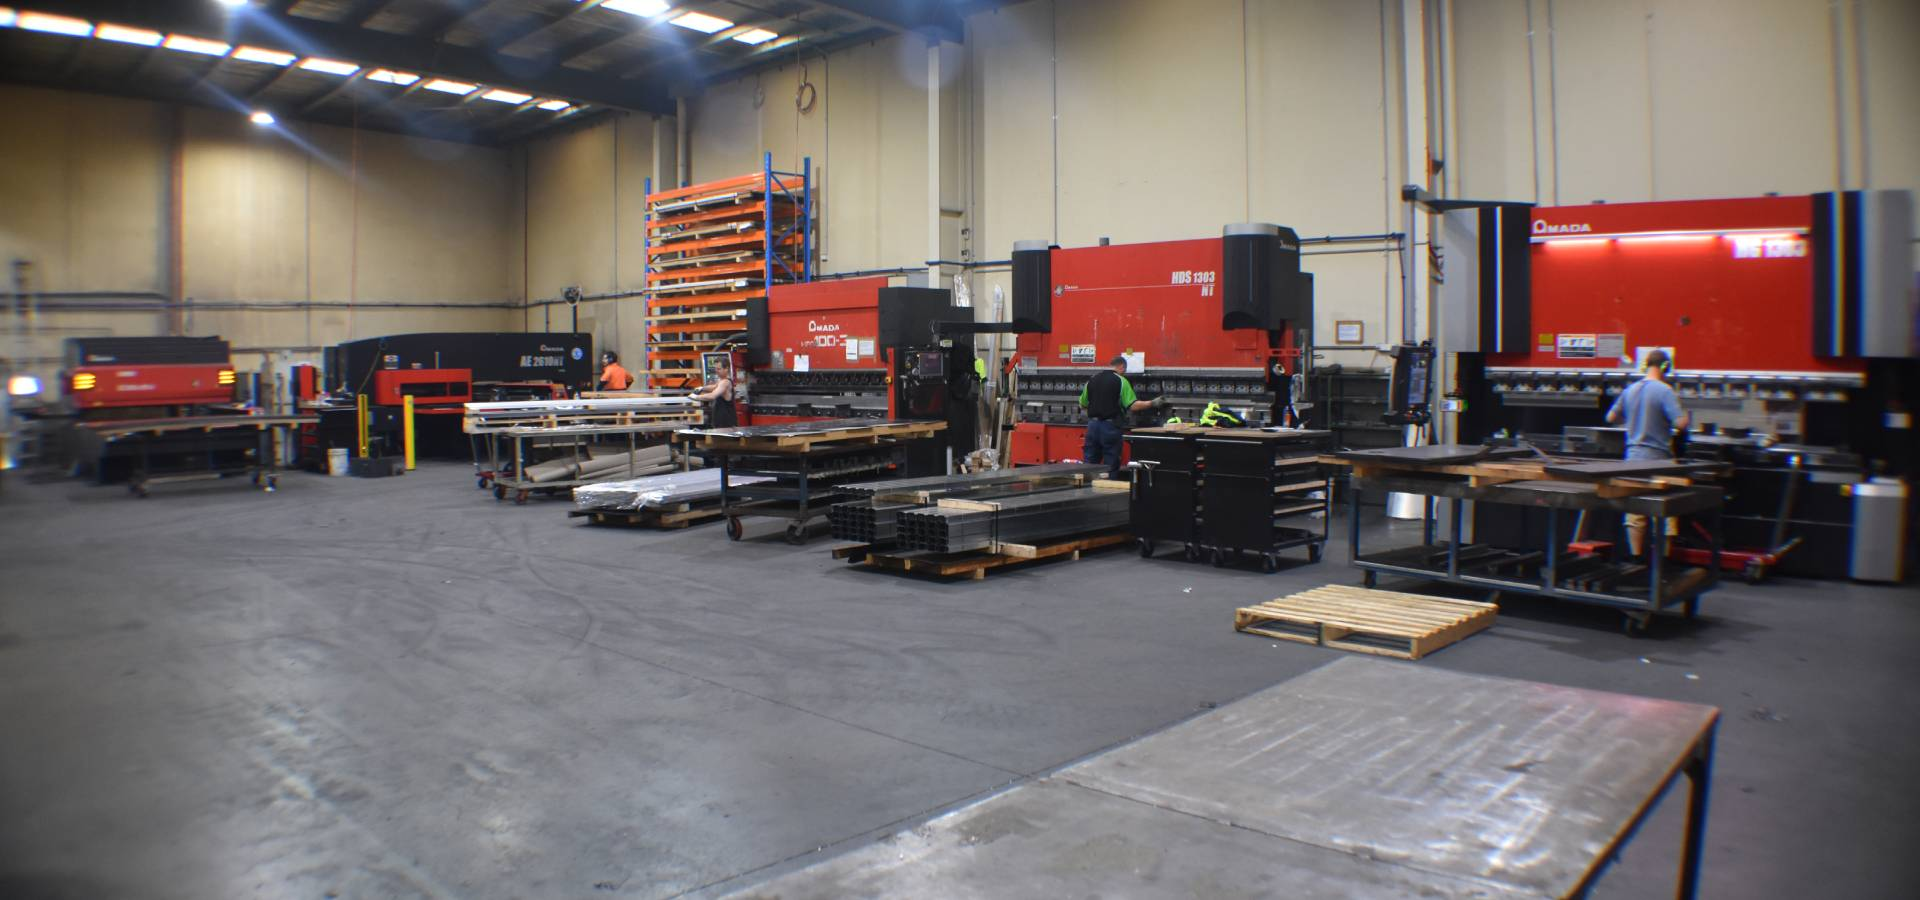 WE ARE THE SHEET METAL MANUFACTURING SPECIALISTS We are the sheet metal<br> manufacturing specialists WE ARE THE SHEET METAL MANUFACTURING SPECIALISTS